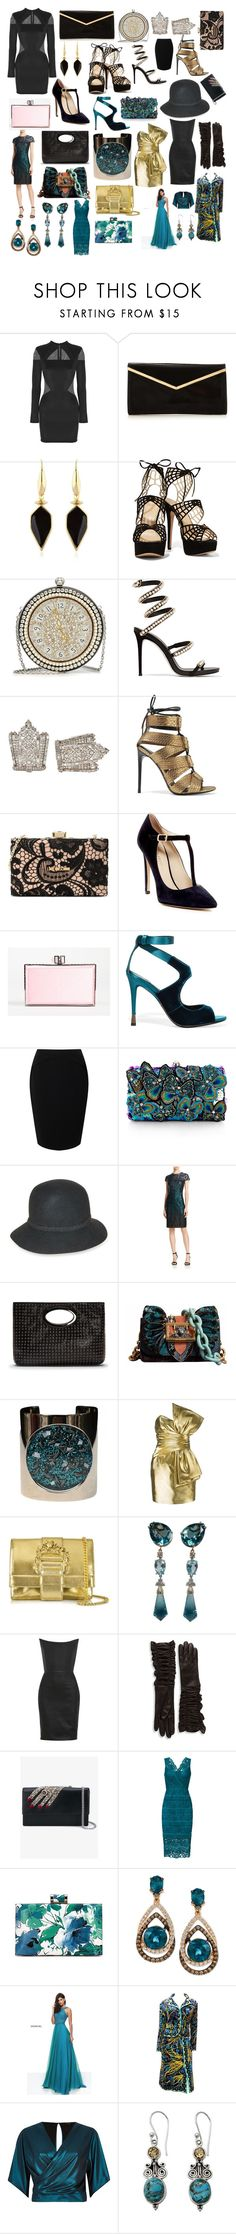 """Some of my favorite things #47"" by andyarana ❤ liked on Polyvore featuring Balmain, Isabel Marant, Alexander McQueen, René Caovilla, Tom Ford, Love Moschino, Charles David, Judith Leiber, Jacques Vert and Accessorize"